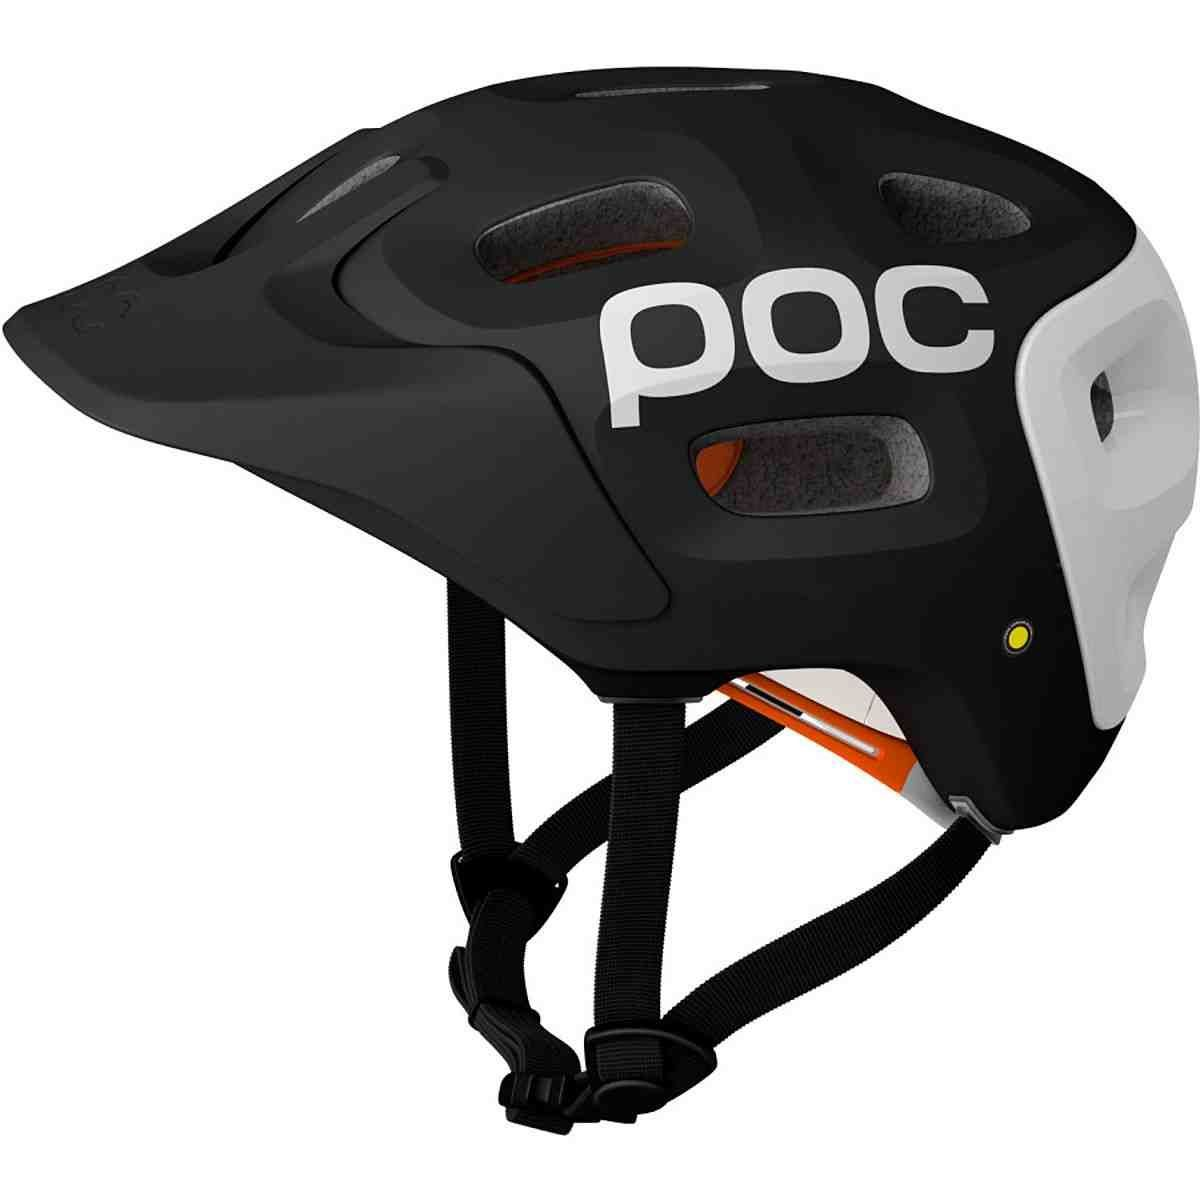 Getting The Right Bike Seat With Images Mountain Bike Helmets